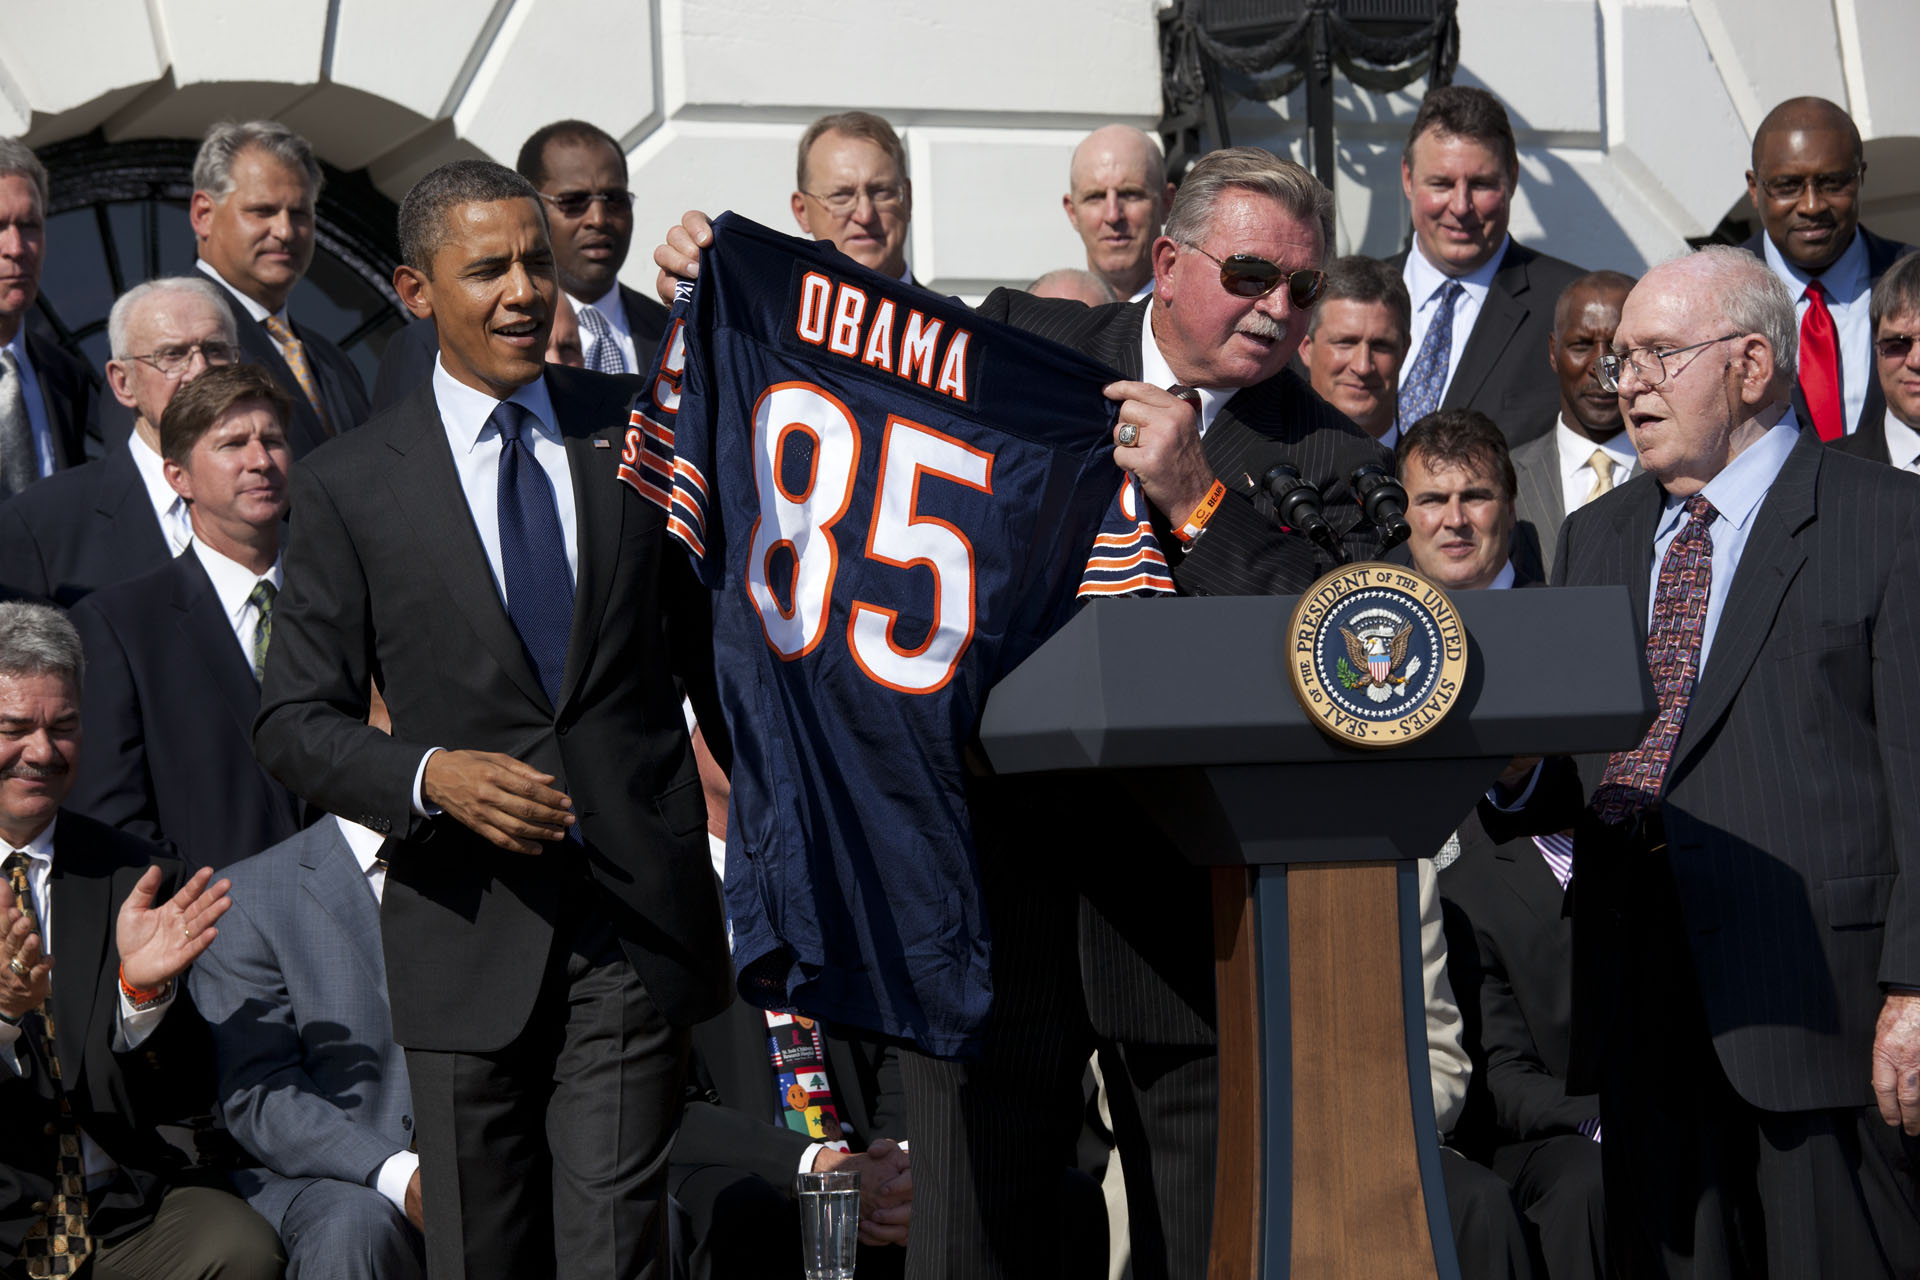 Mike Ditka presents President Obama with his Own Chicago Bears Jersey